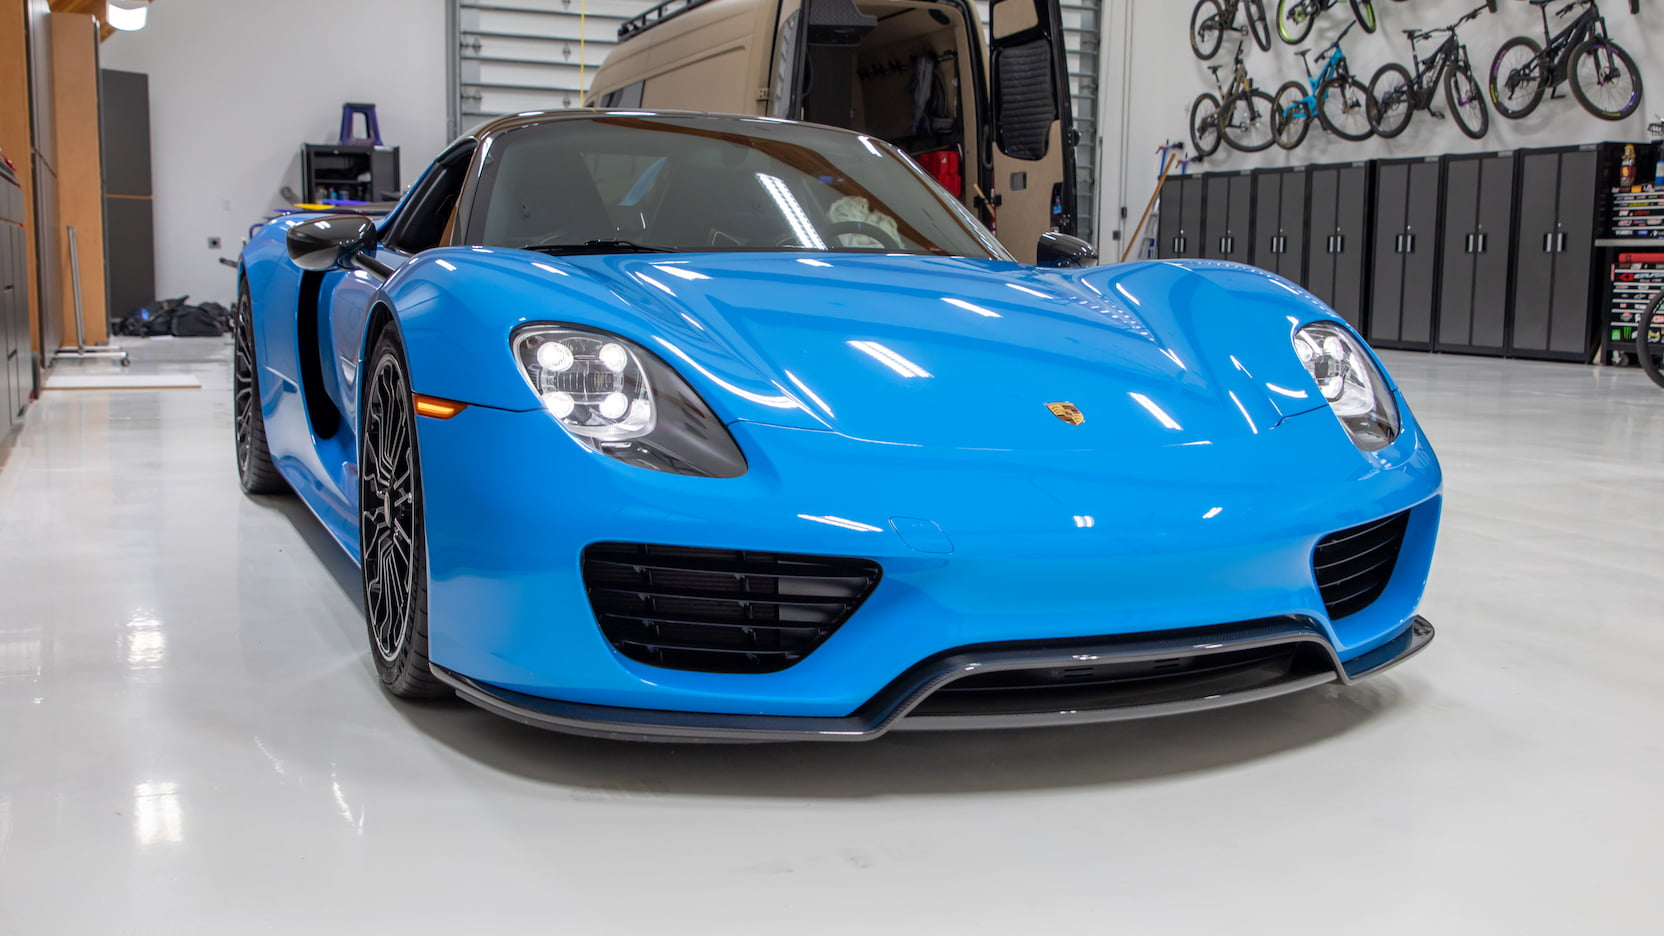 Porsche-918-Spyder-Riviera-Blue-auction-12